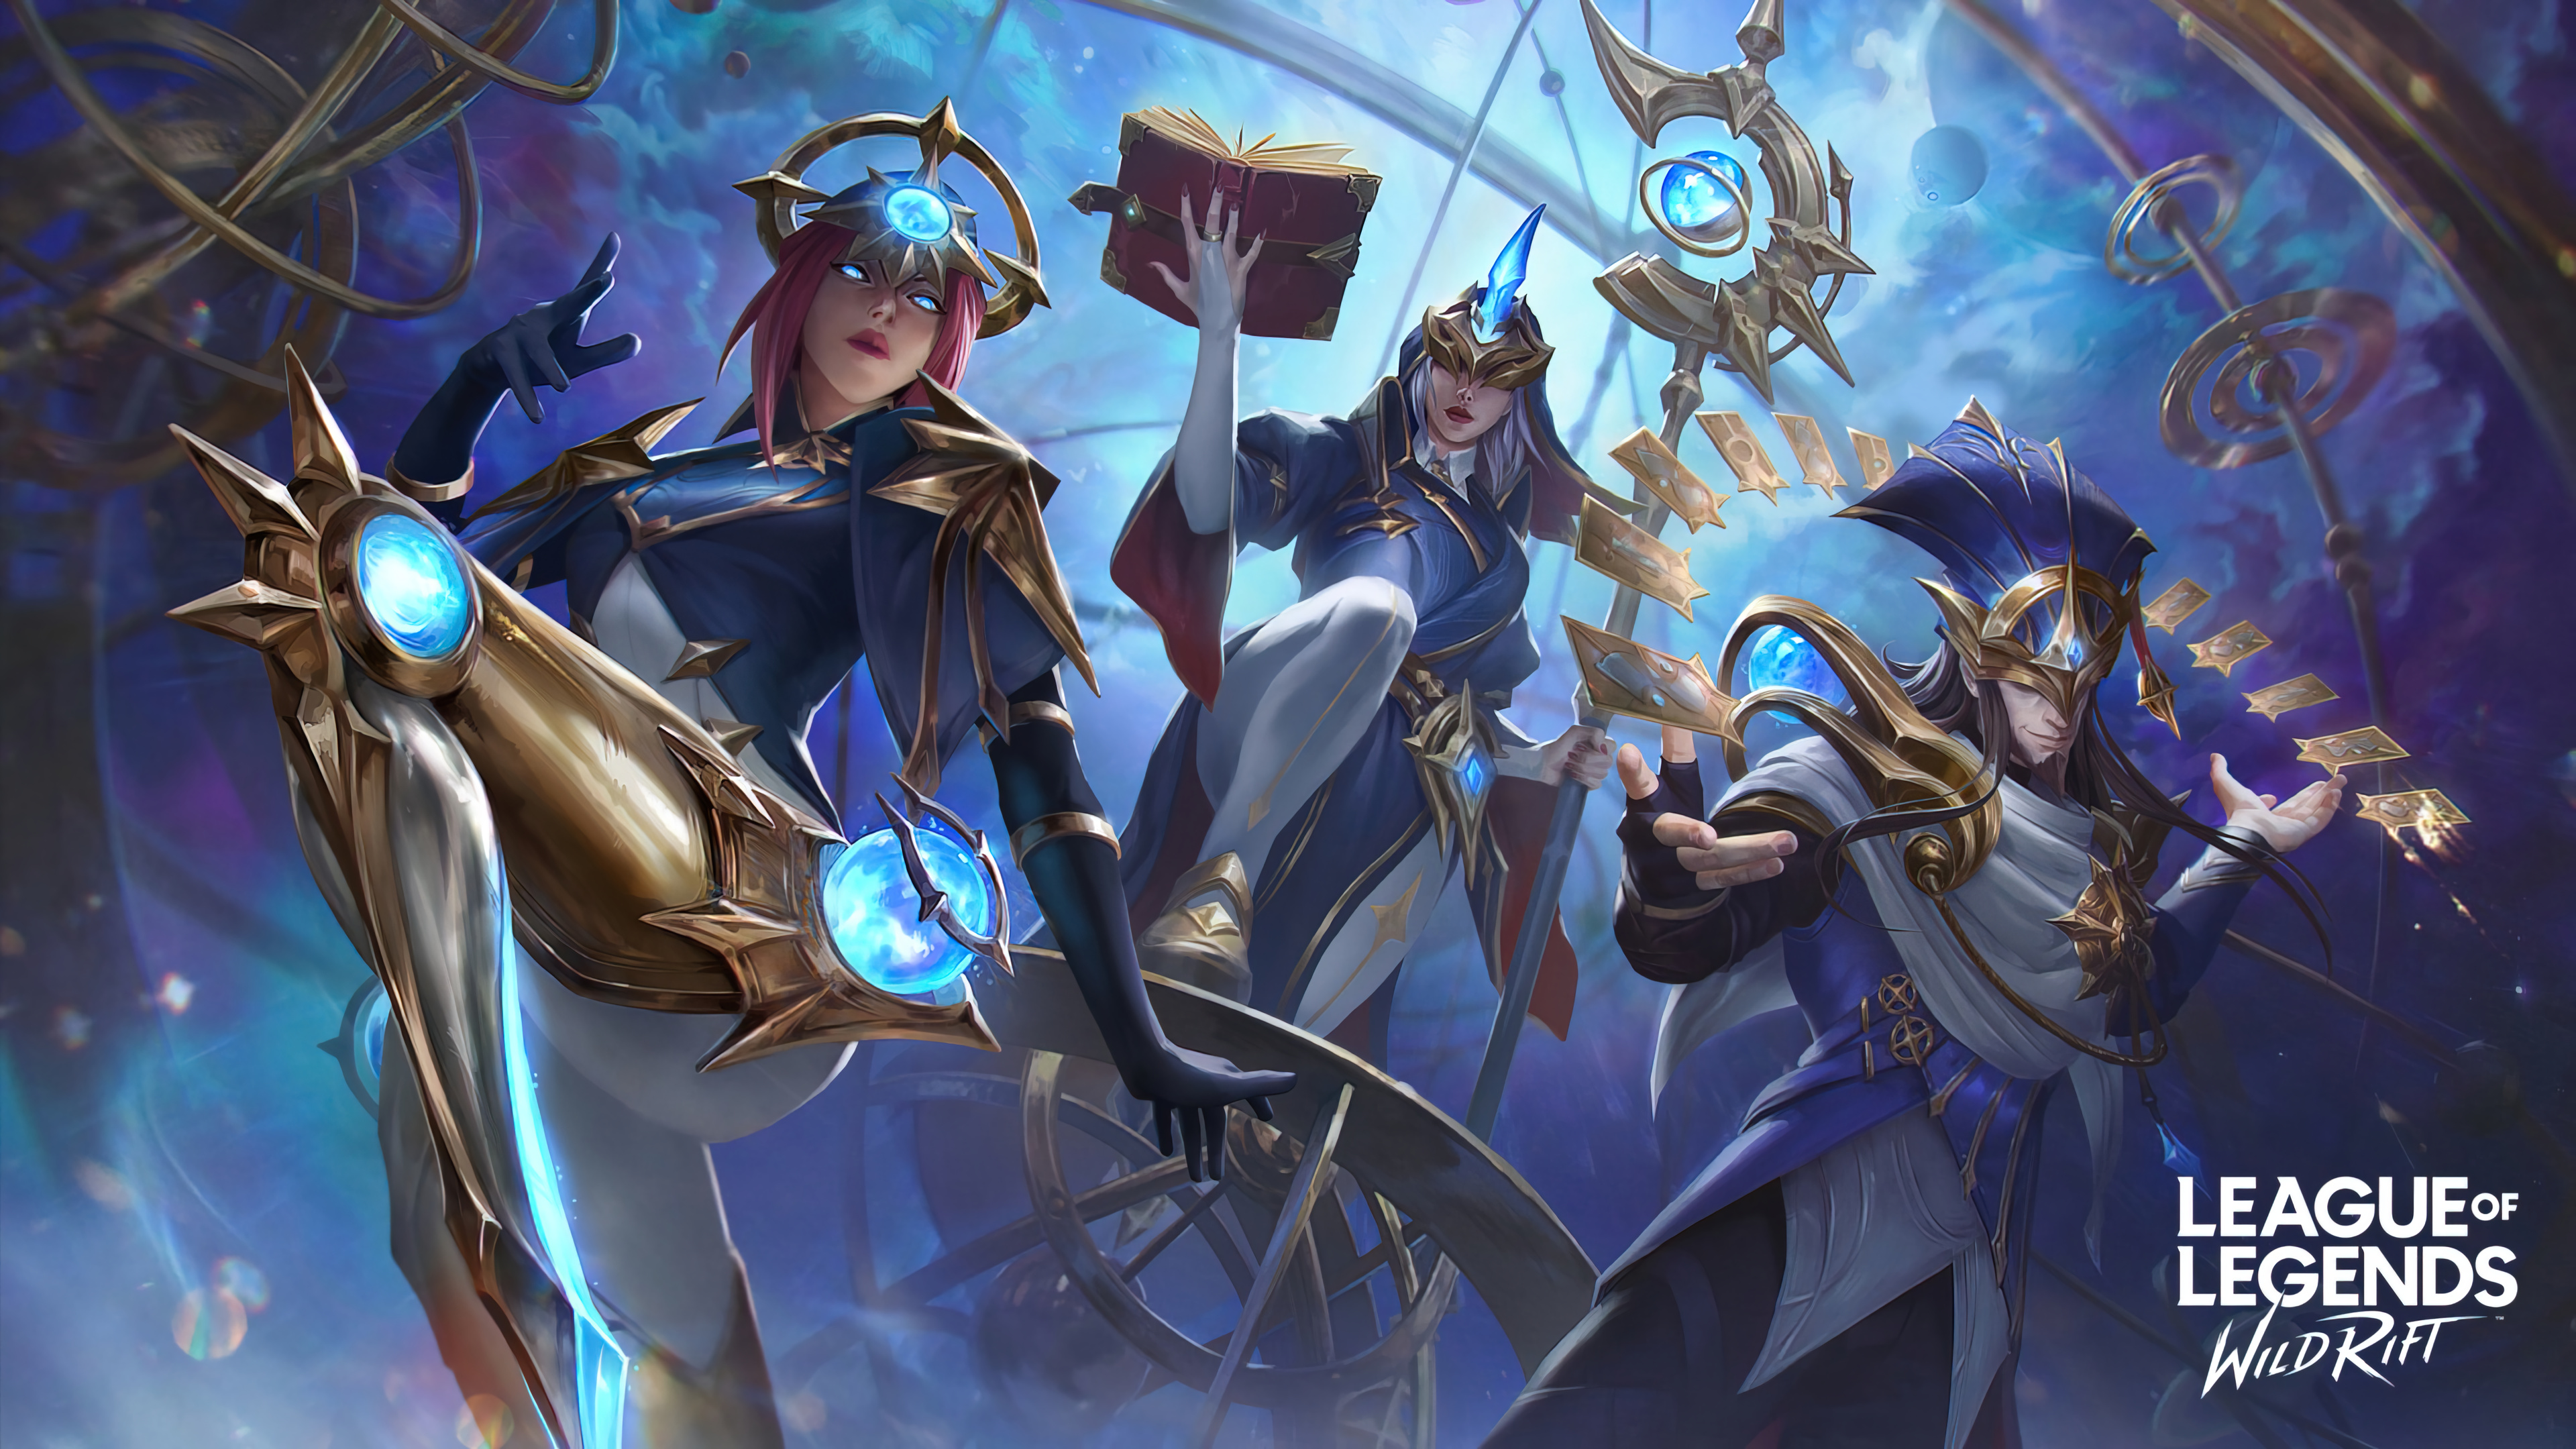 General 3840x2160 Camille (League of Legends) Soraka Soraka (League of Legends) League of Legends Riot Games Support (League Of Legends) supporters galaxy astronaut planet 4K